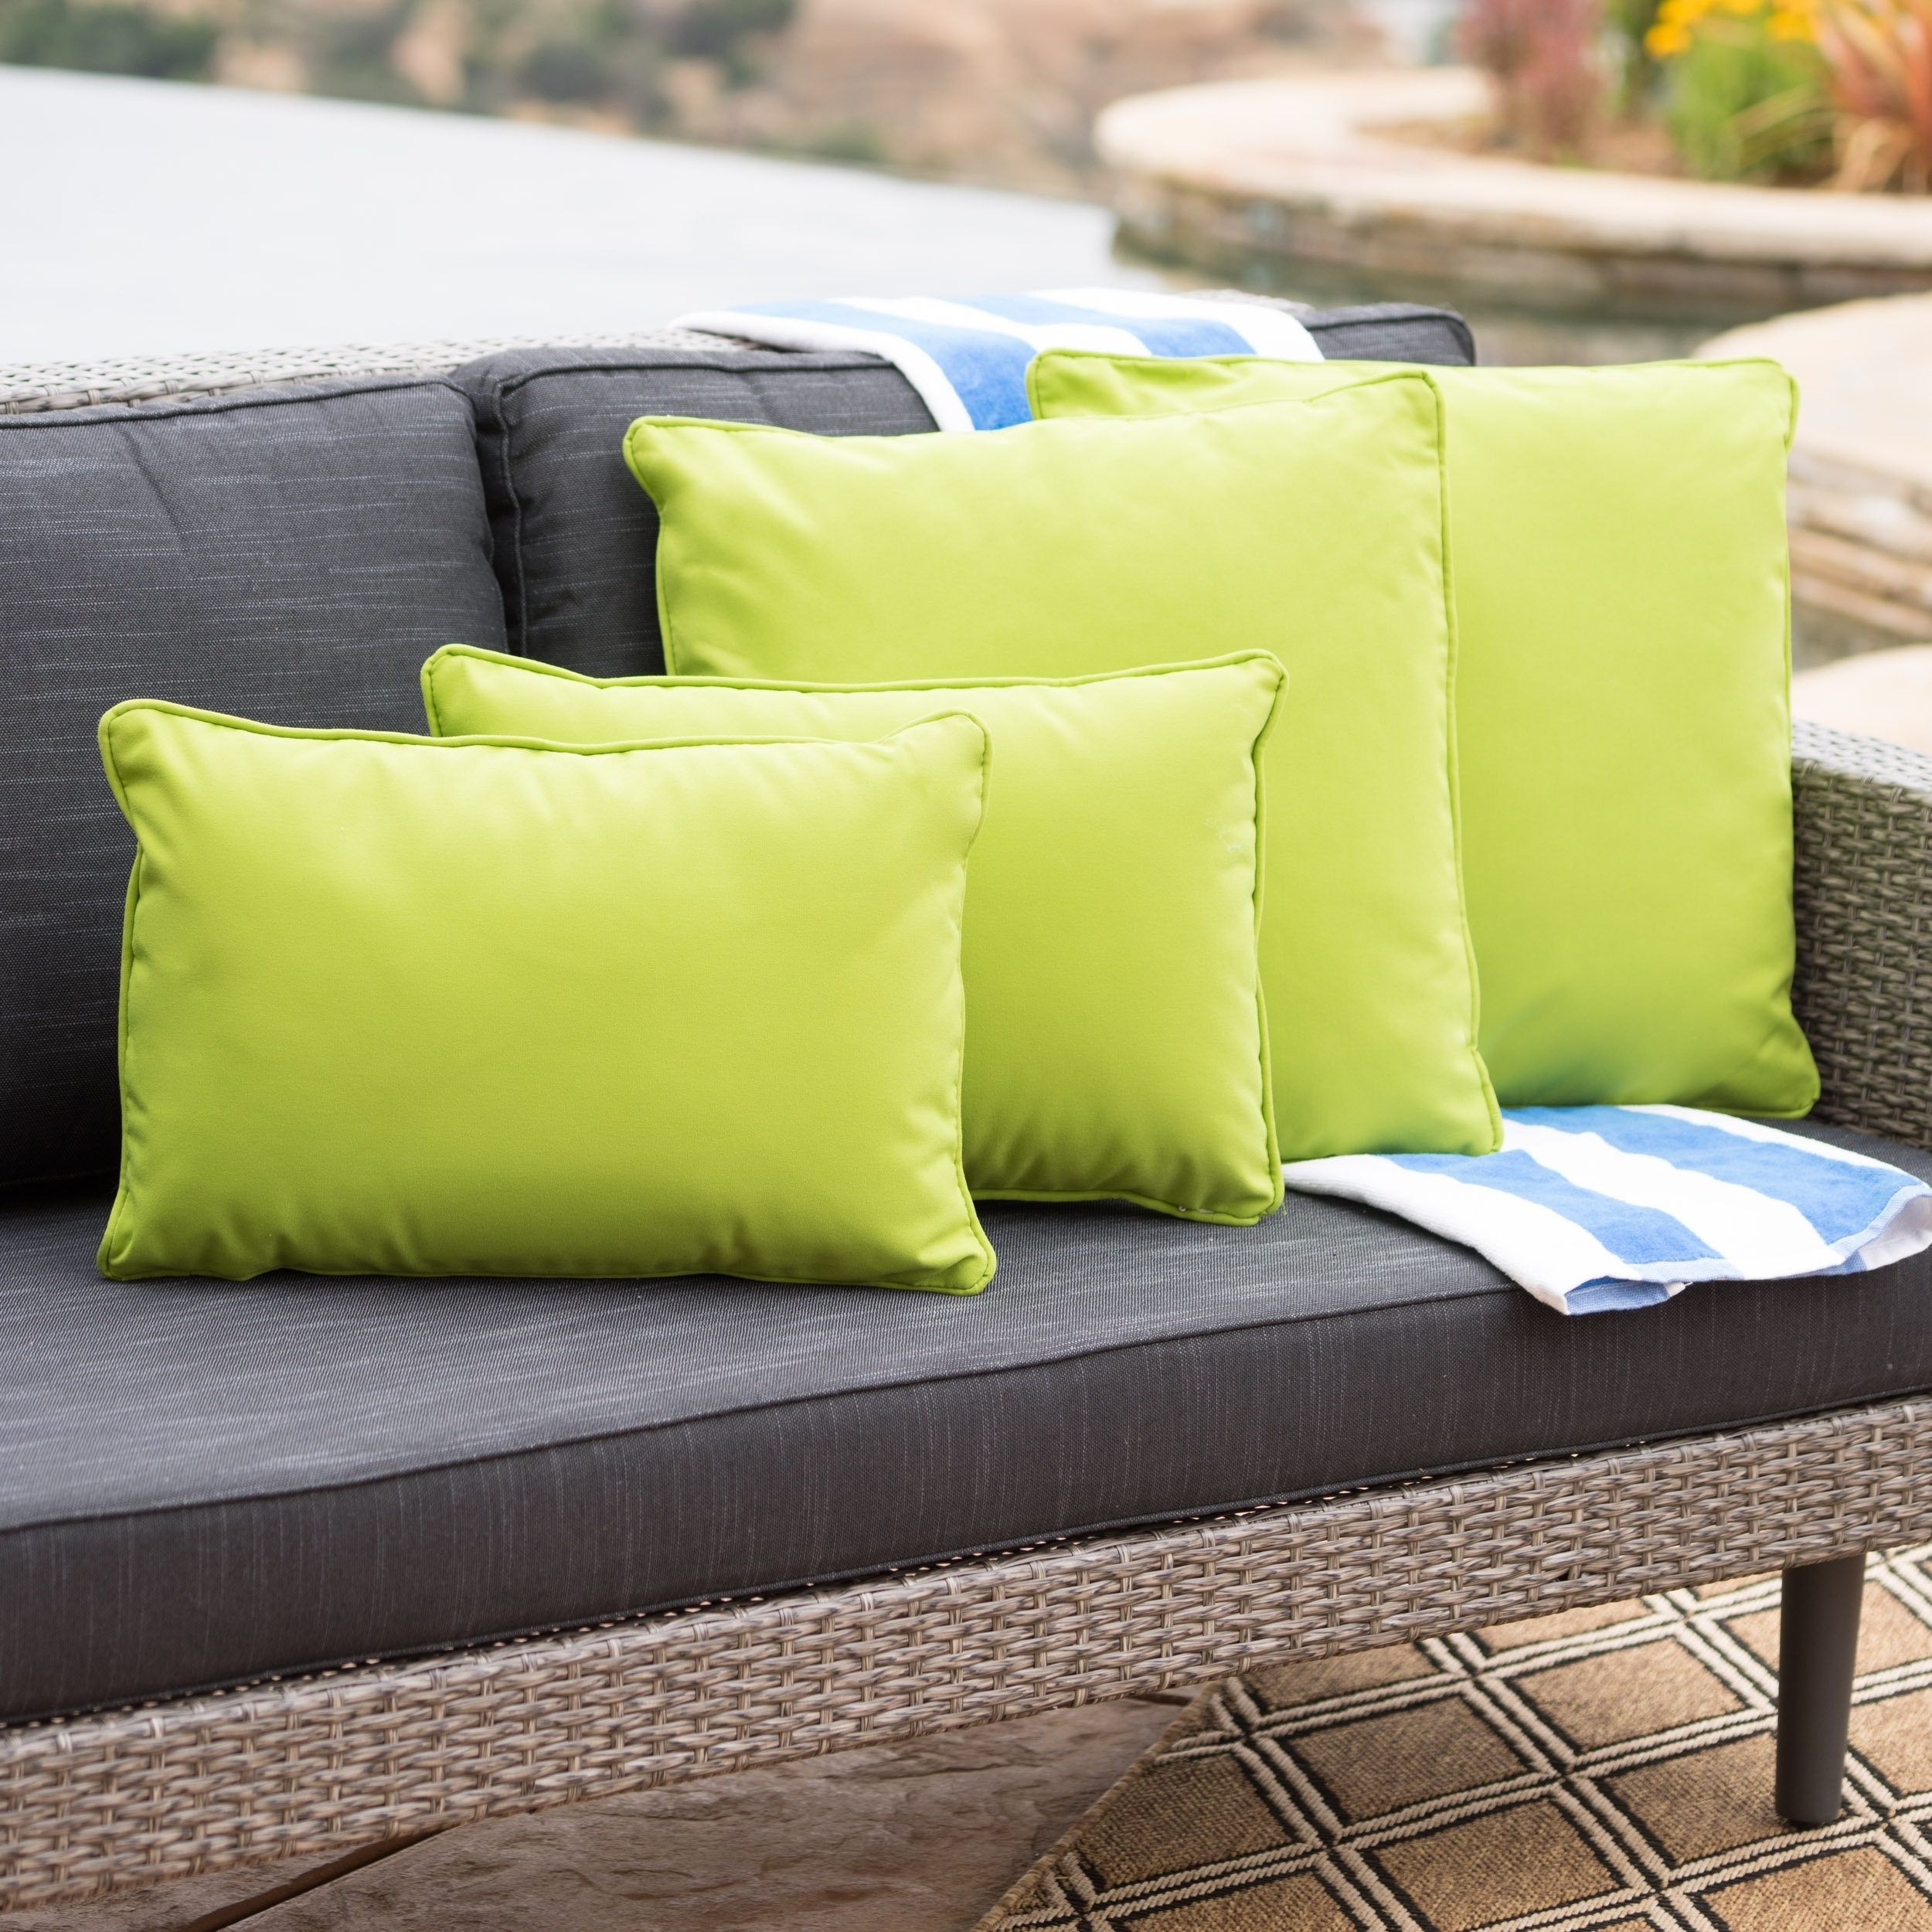 Buy Outdoor Cushions Pillows Online At Overstock Our